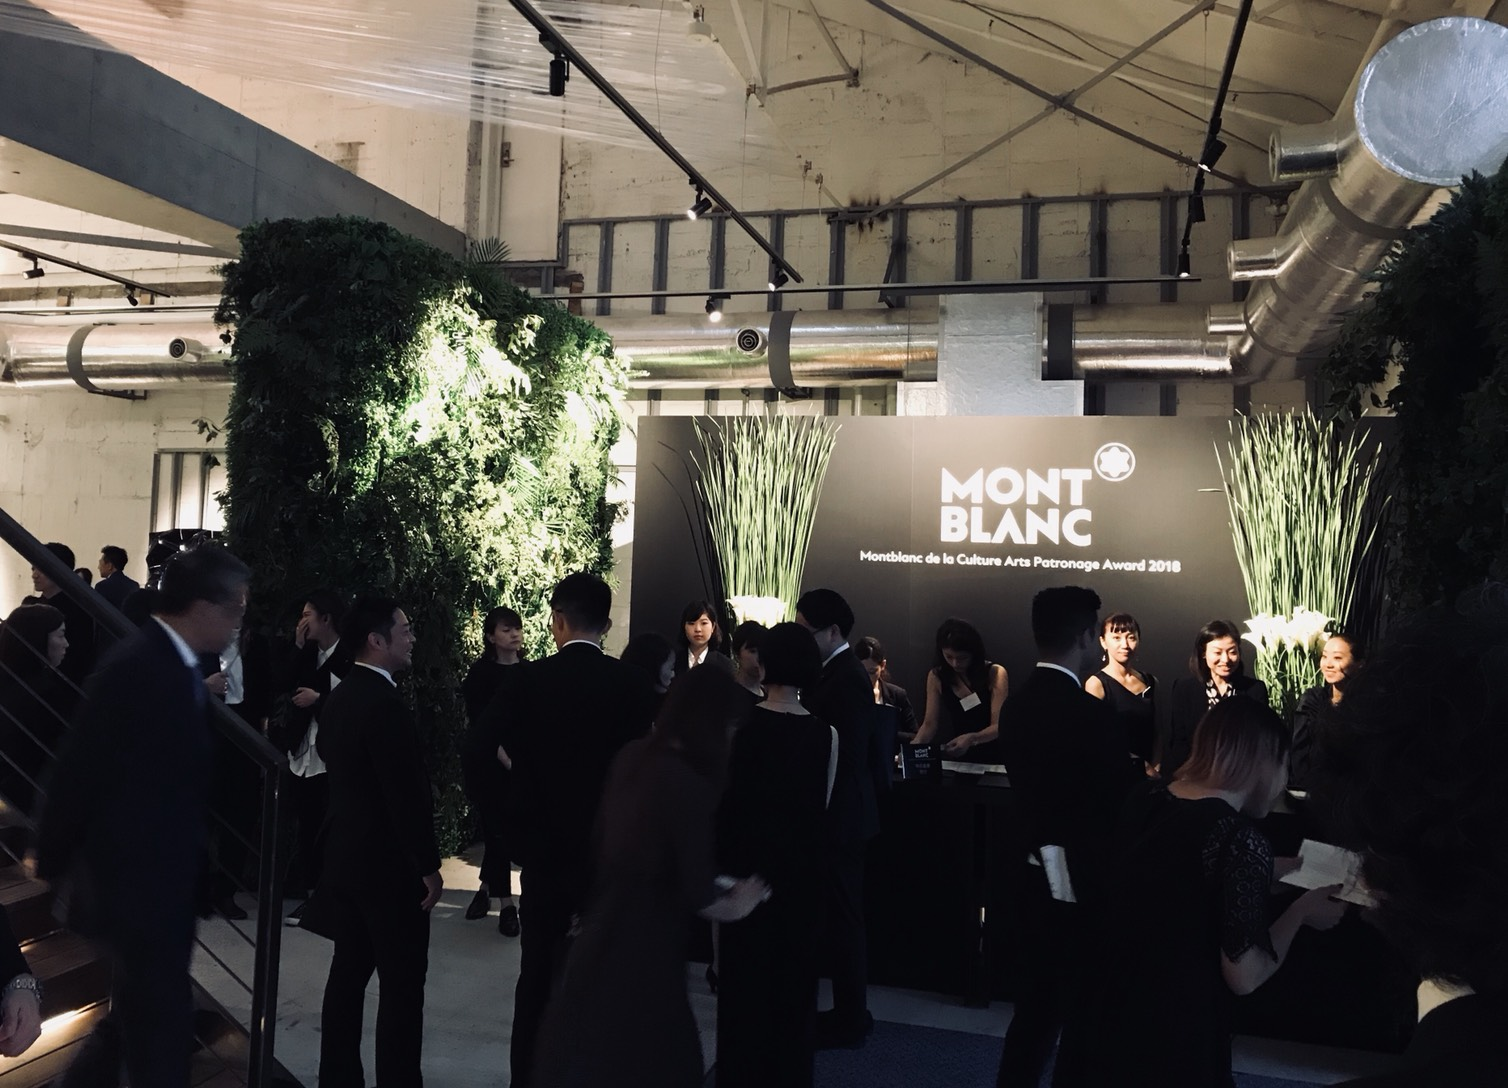 Montblanc de la Culture Arts Patronage Award 2018